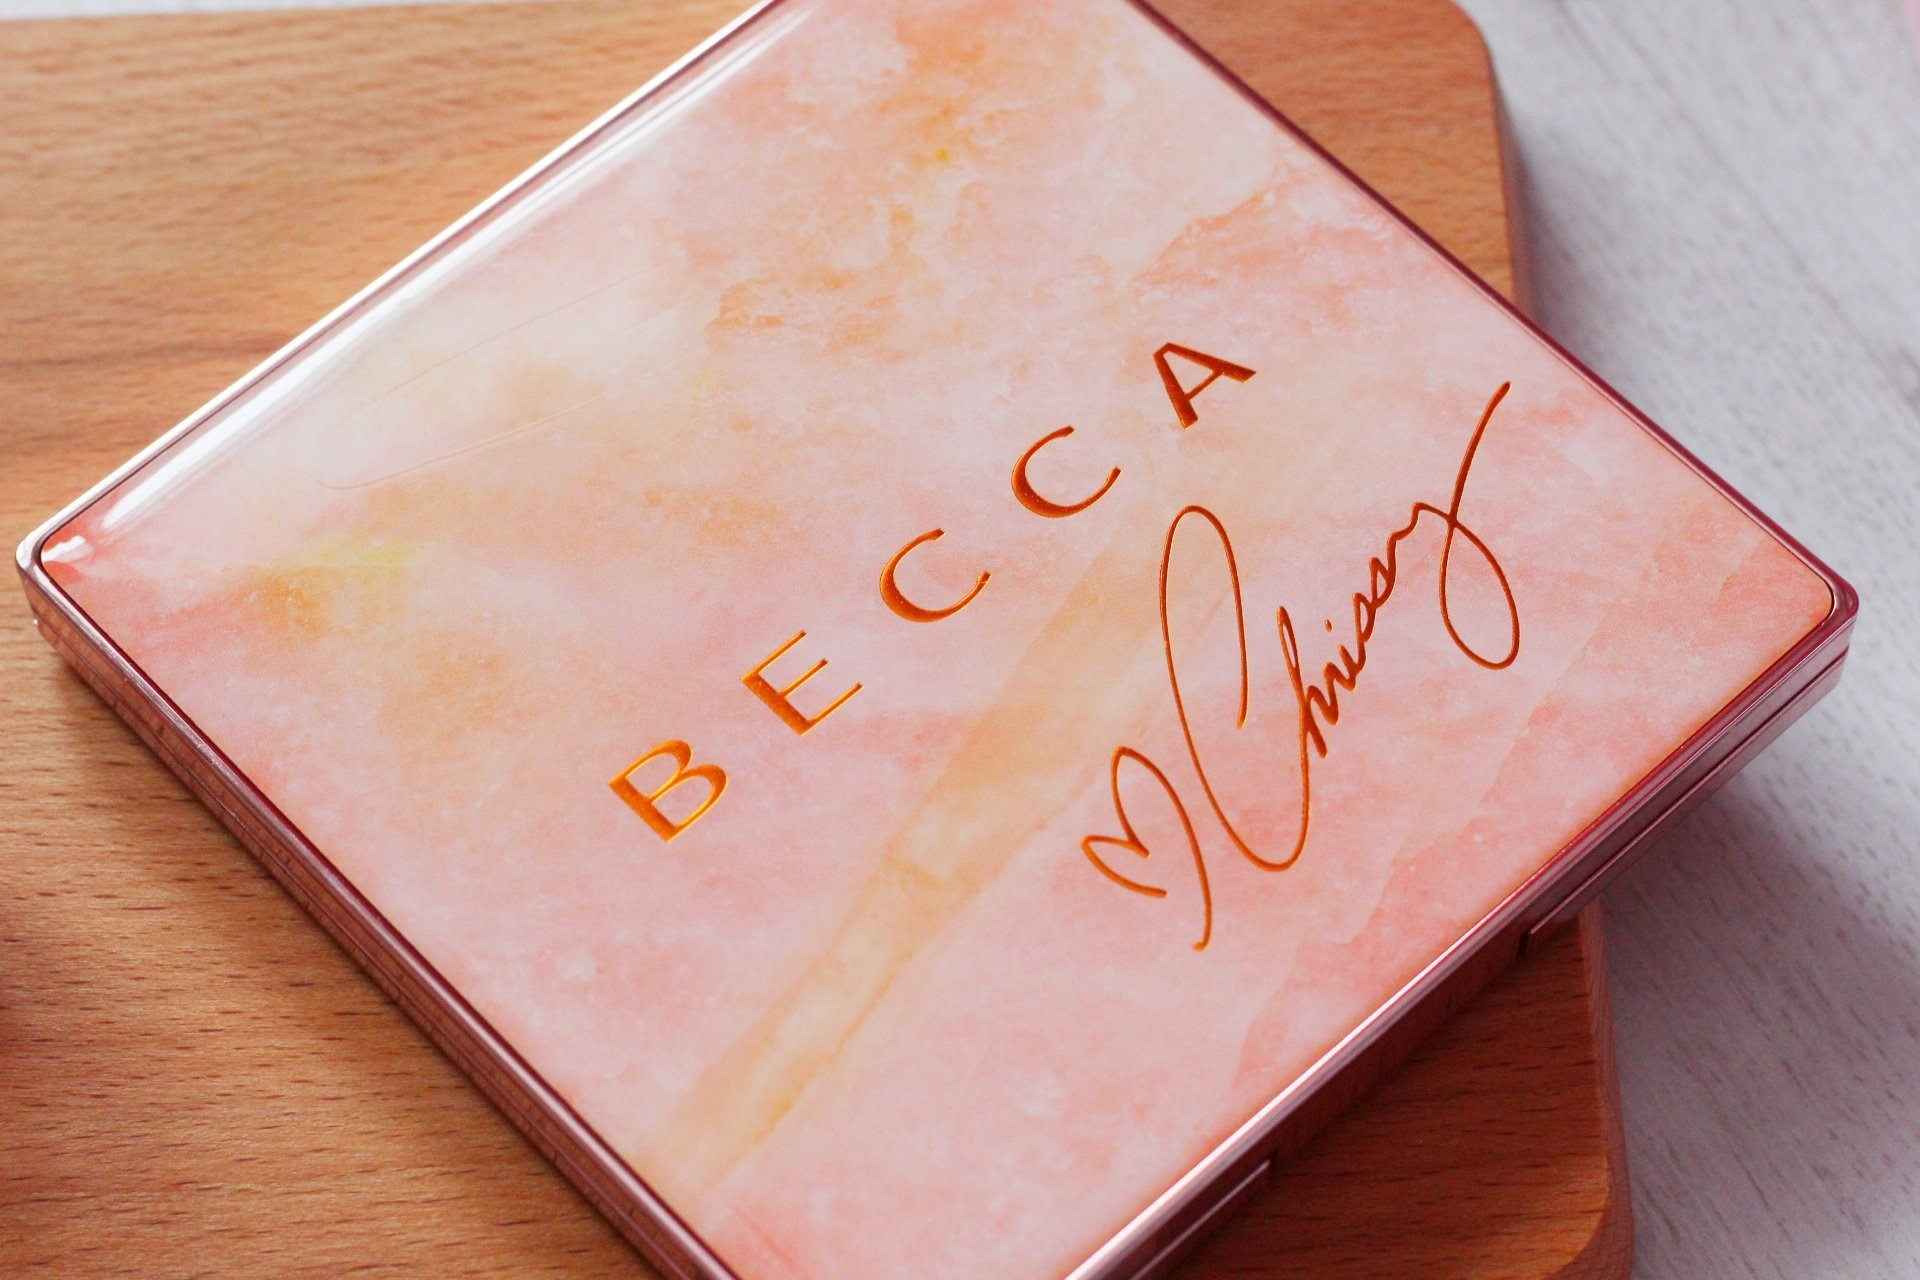 Becca x Chrissy Teigan Glow Face Palette Review and Swatches 7 (2).jpeg